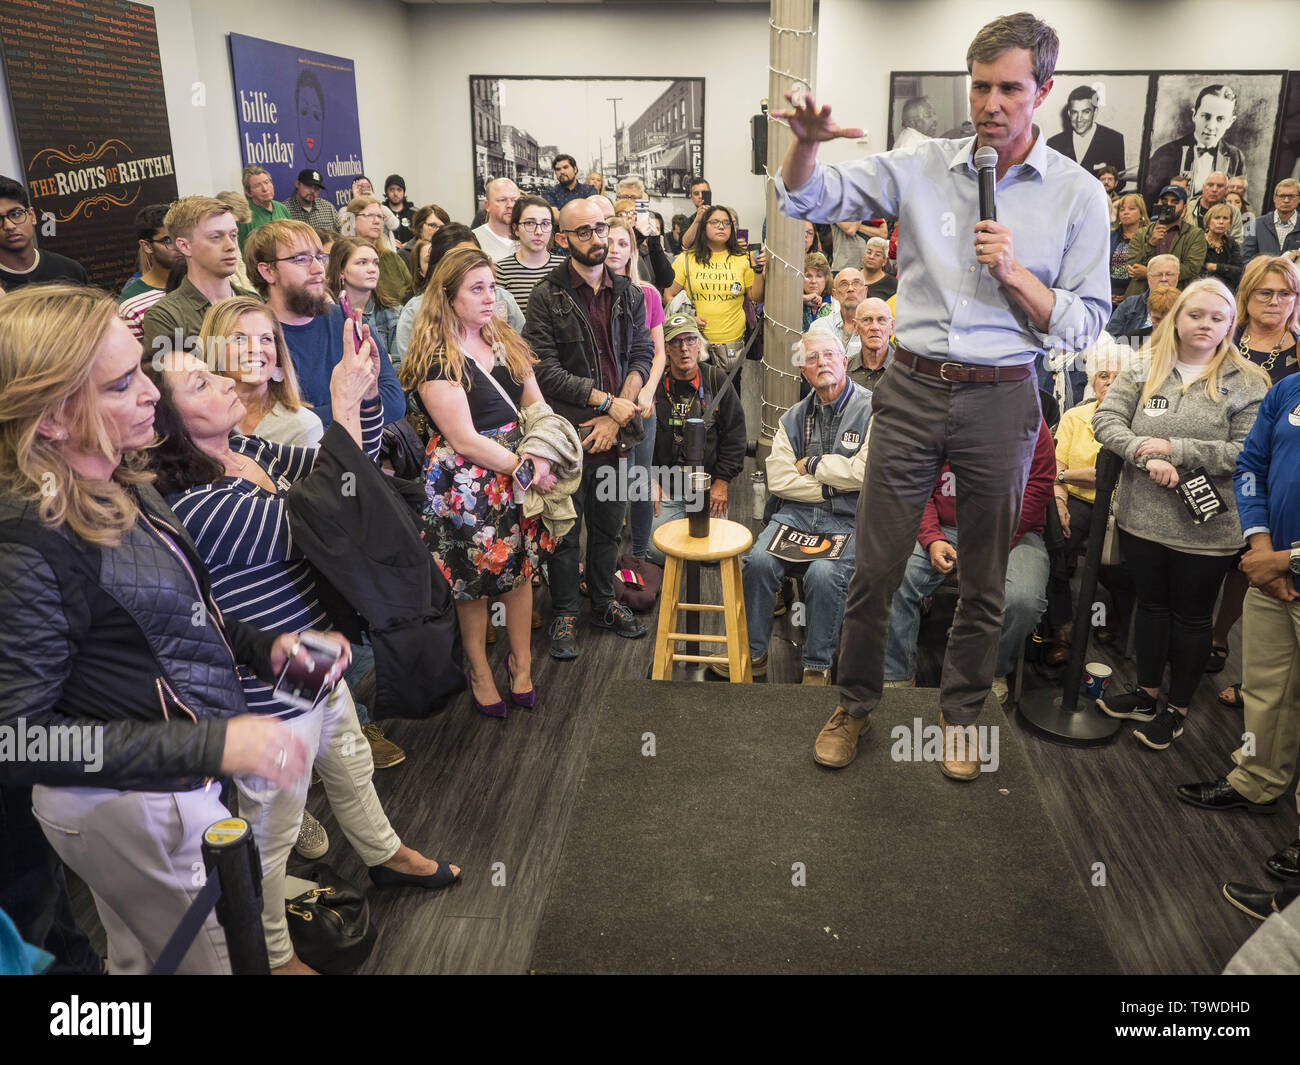 Davenport, Iowa, USA. 20th May, 2019. BETO O'ROURKE, a Texas Democrat, talks to Democratic voters during a town hall style campaign appearance in Davenport. About 200 people came to the event in the River Music Experience, a downtown venue. O'Rourke, running to be the 2020 Democratic nominee for the US Presidency, has made climate change a central part of his campaign. He held a town hall in Davenport Monday. Iowa traditionally hosts the the first election event of the presidential election cycle. The Iowa Caucuses will be on Feb. 3, 2020. Credit: Jack Kurtz/ZUMA Wire/Alamy Live News - Stock Image